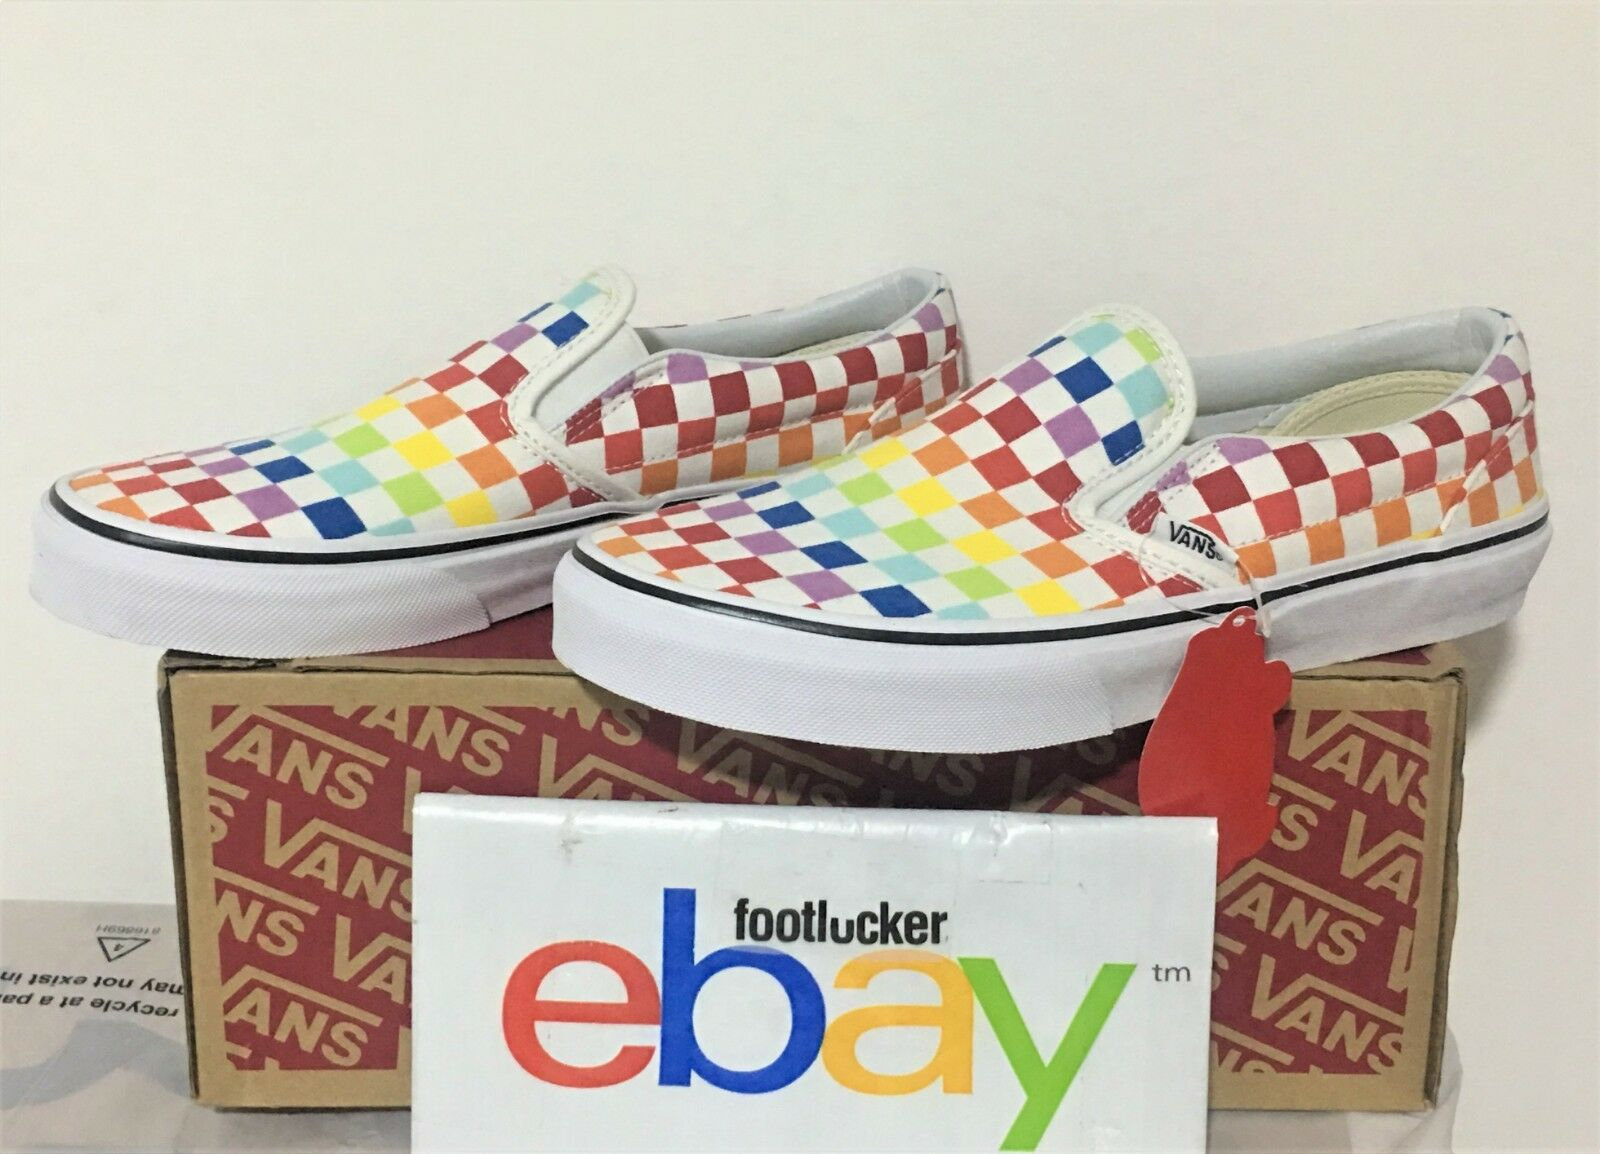 Vans Slip On Slip-on Rainbow Checkerboard White Multi color All Size 3Y-13 LIMIT